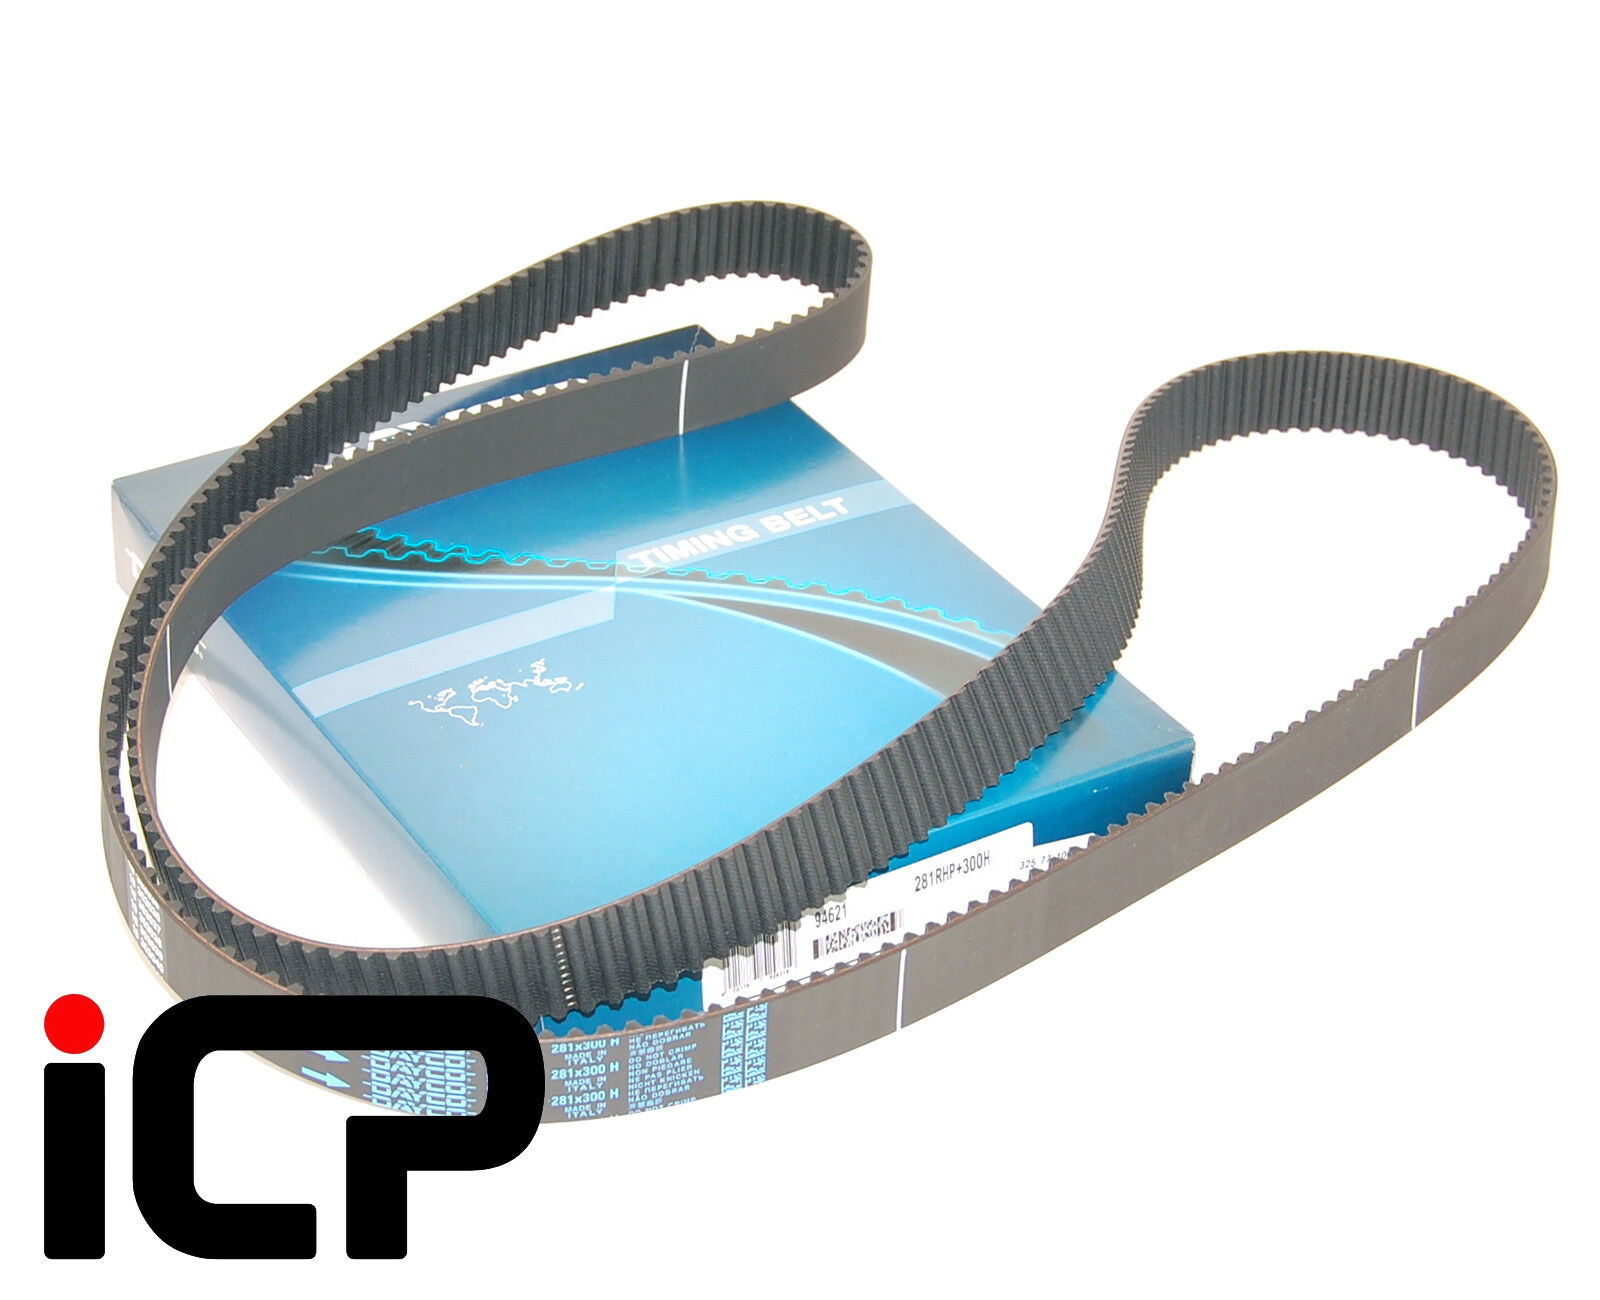 Dayco Cam Timing Belt With Marks Fits Impreza Ej20g Ej20k Jdm Pulleys 1 Of 1free Shipping